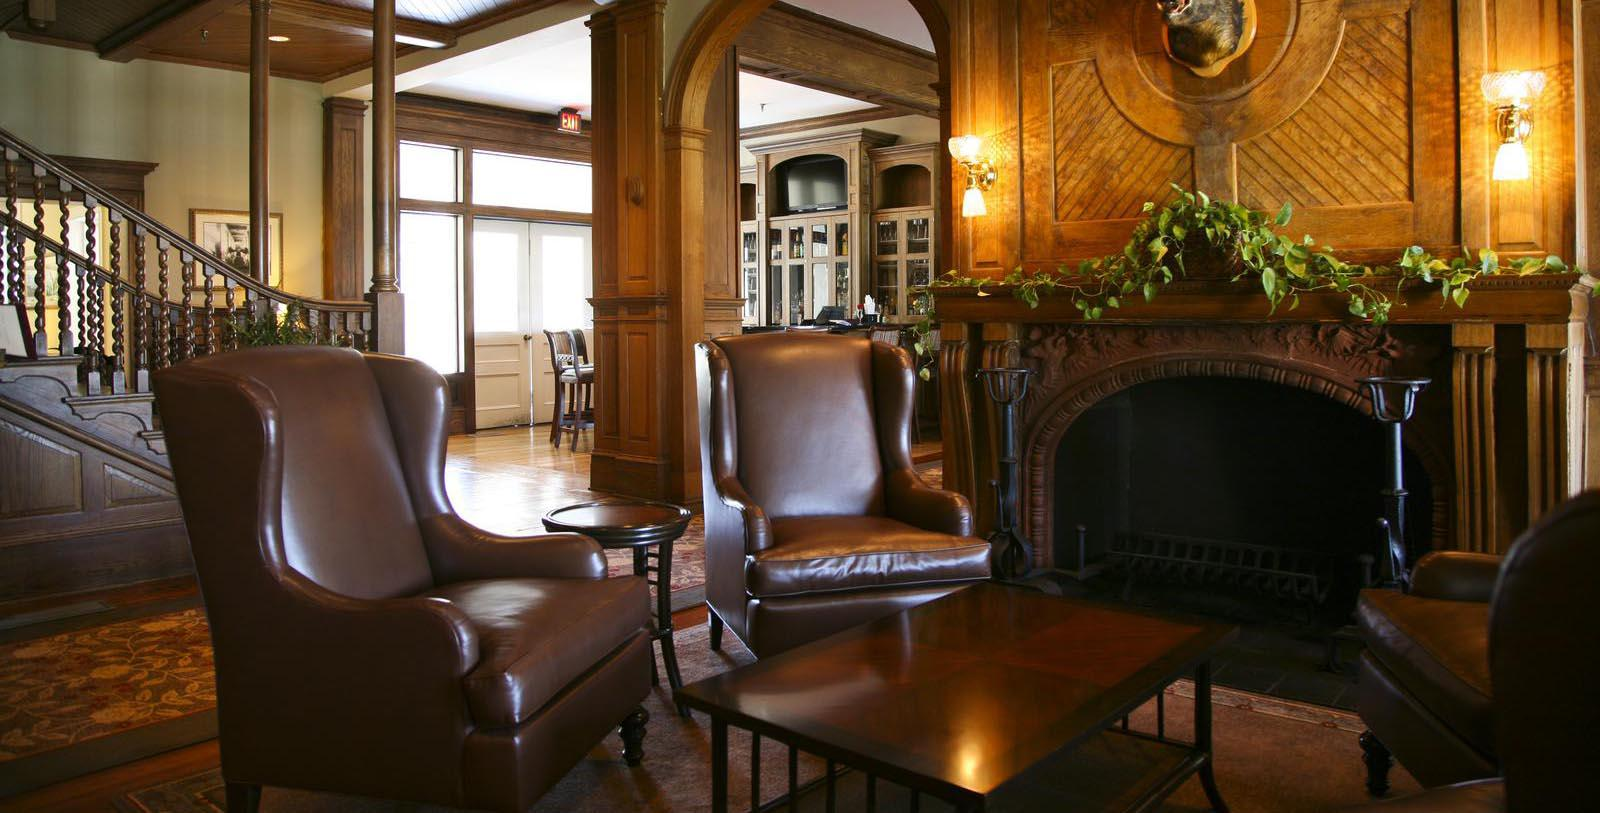 Image of Lobby Seating and FIreplace, Jekyll Island Club Resort in Jekyll Island, Georgia, 1886 Member of Historic Hotels of America, Hot Deals